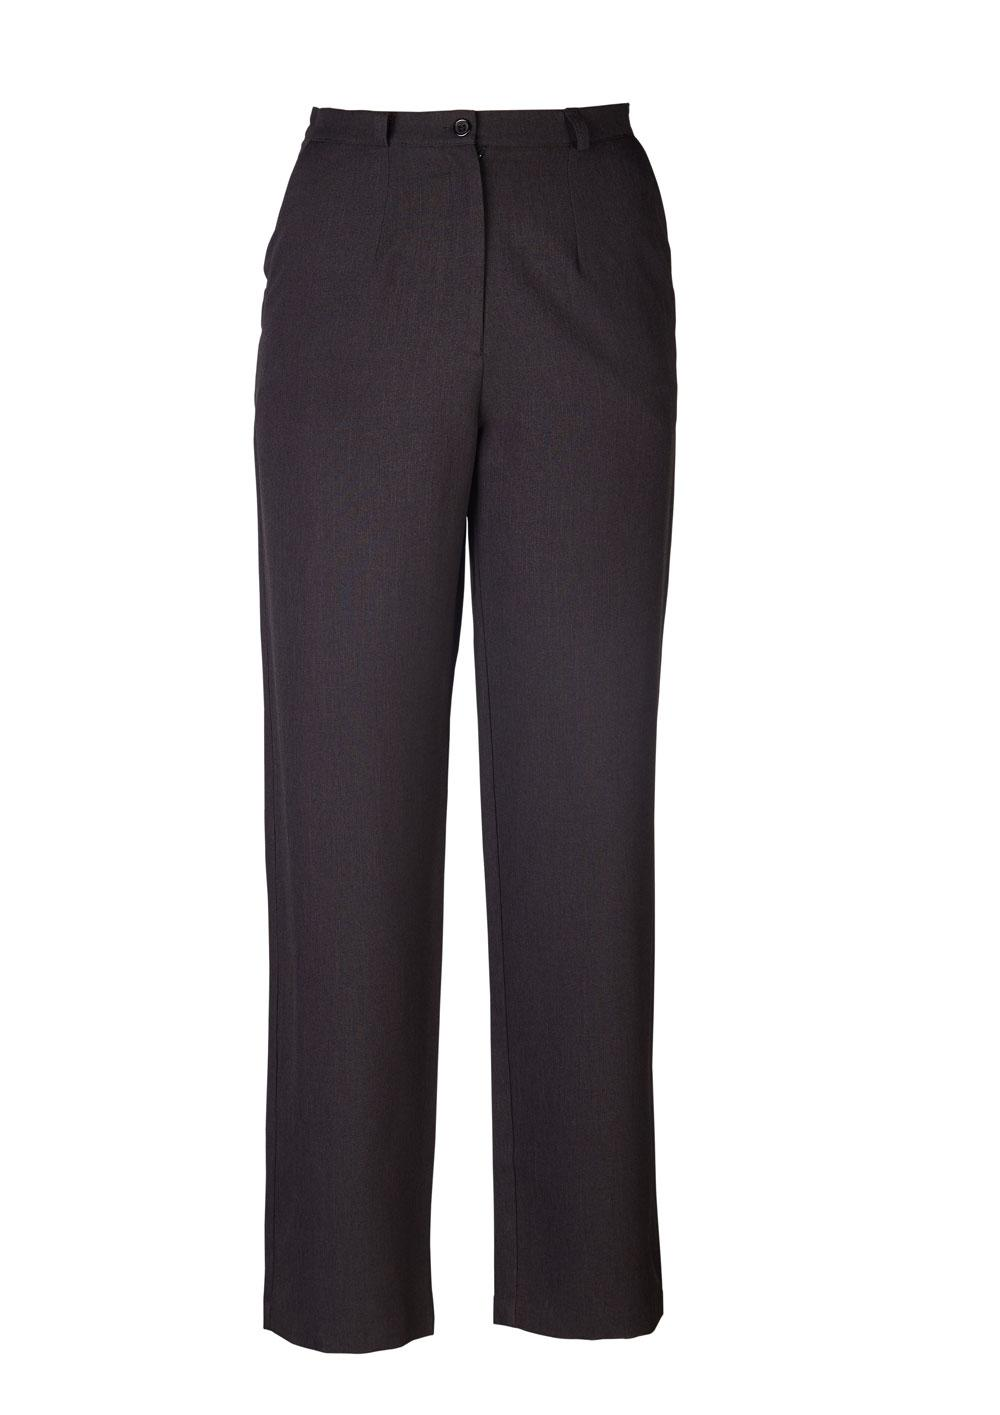 Kerry Straight Cut Slacks - Cationic Charcoal